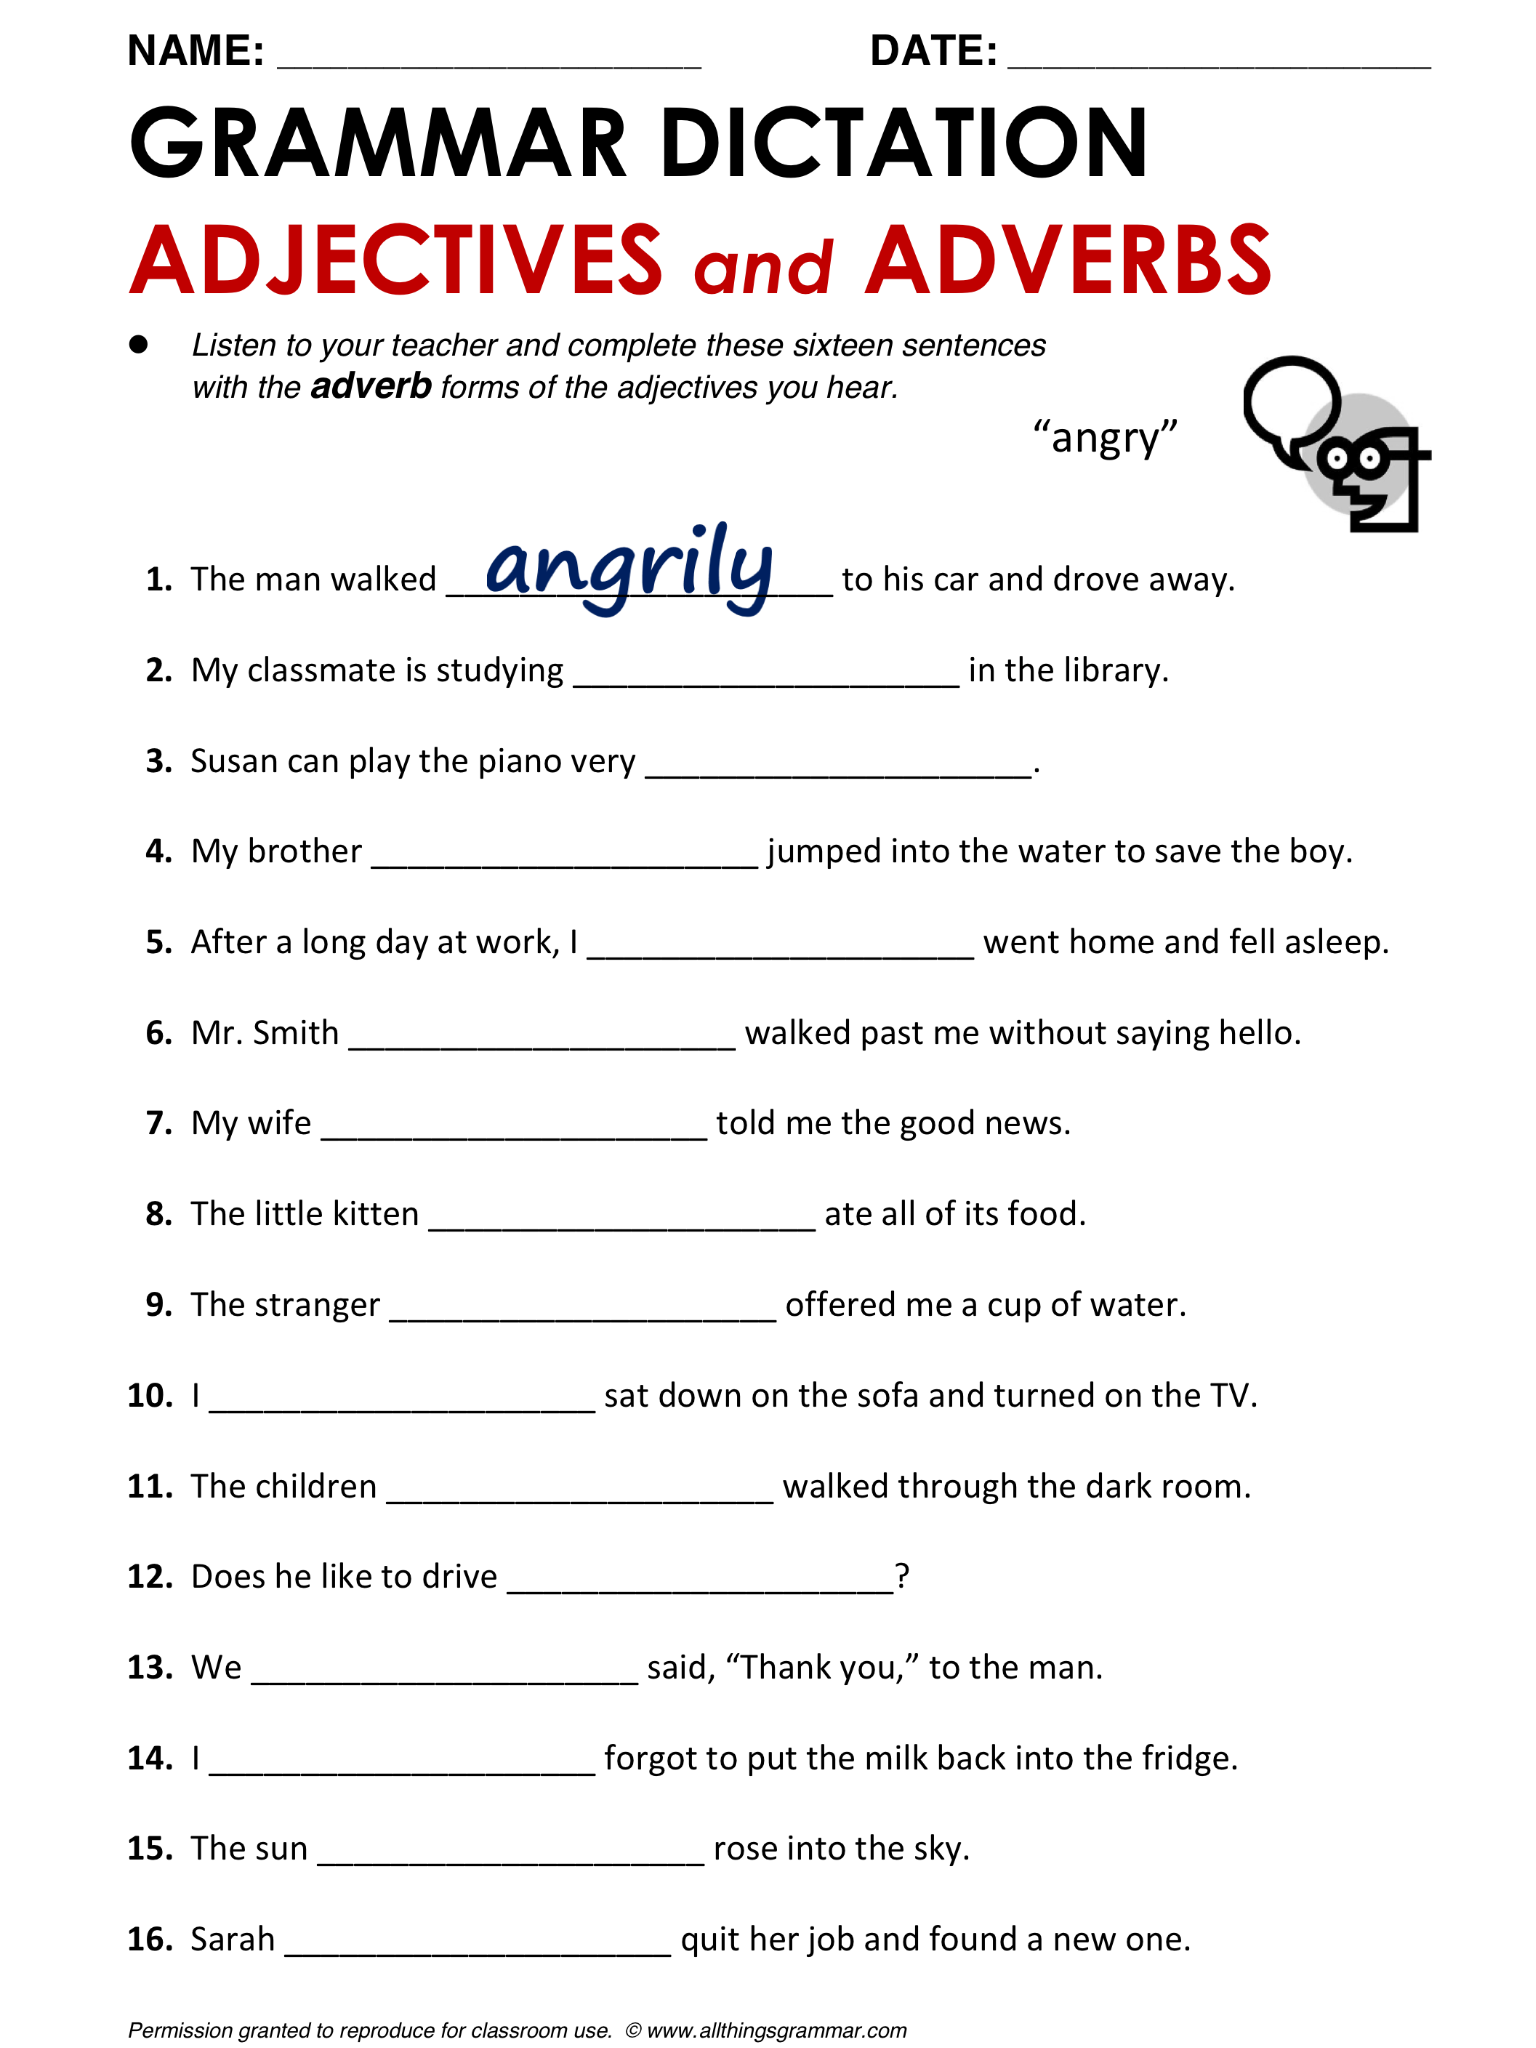 Worksheets Adverbs And Adjectives Worksheet english grammar adjectives and adverbs httpwww allthingsgrammar and